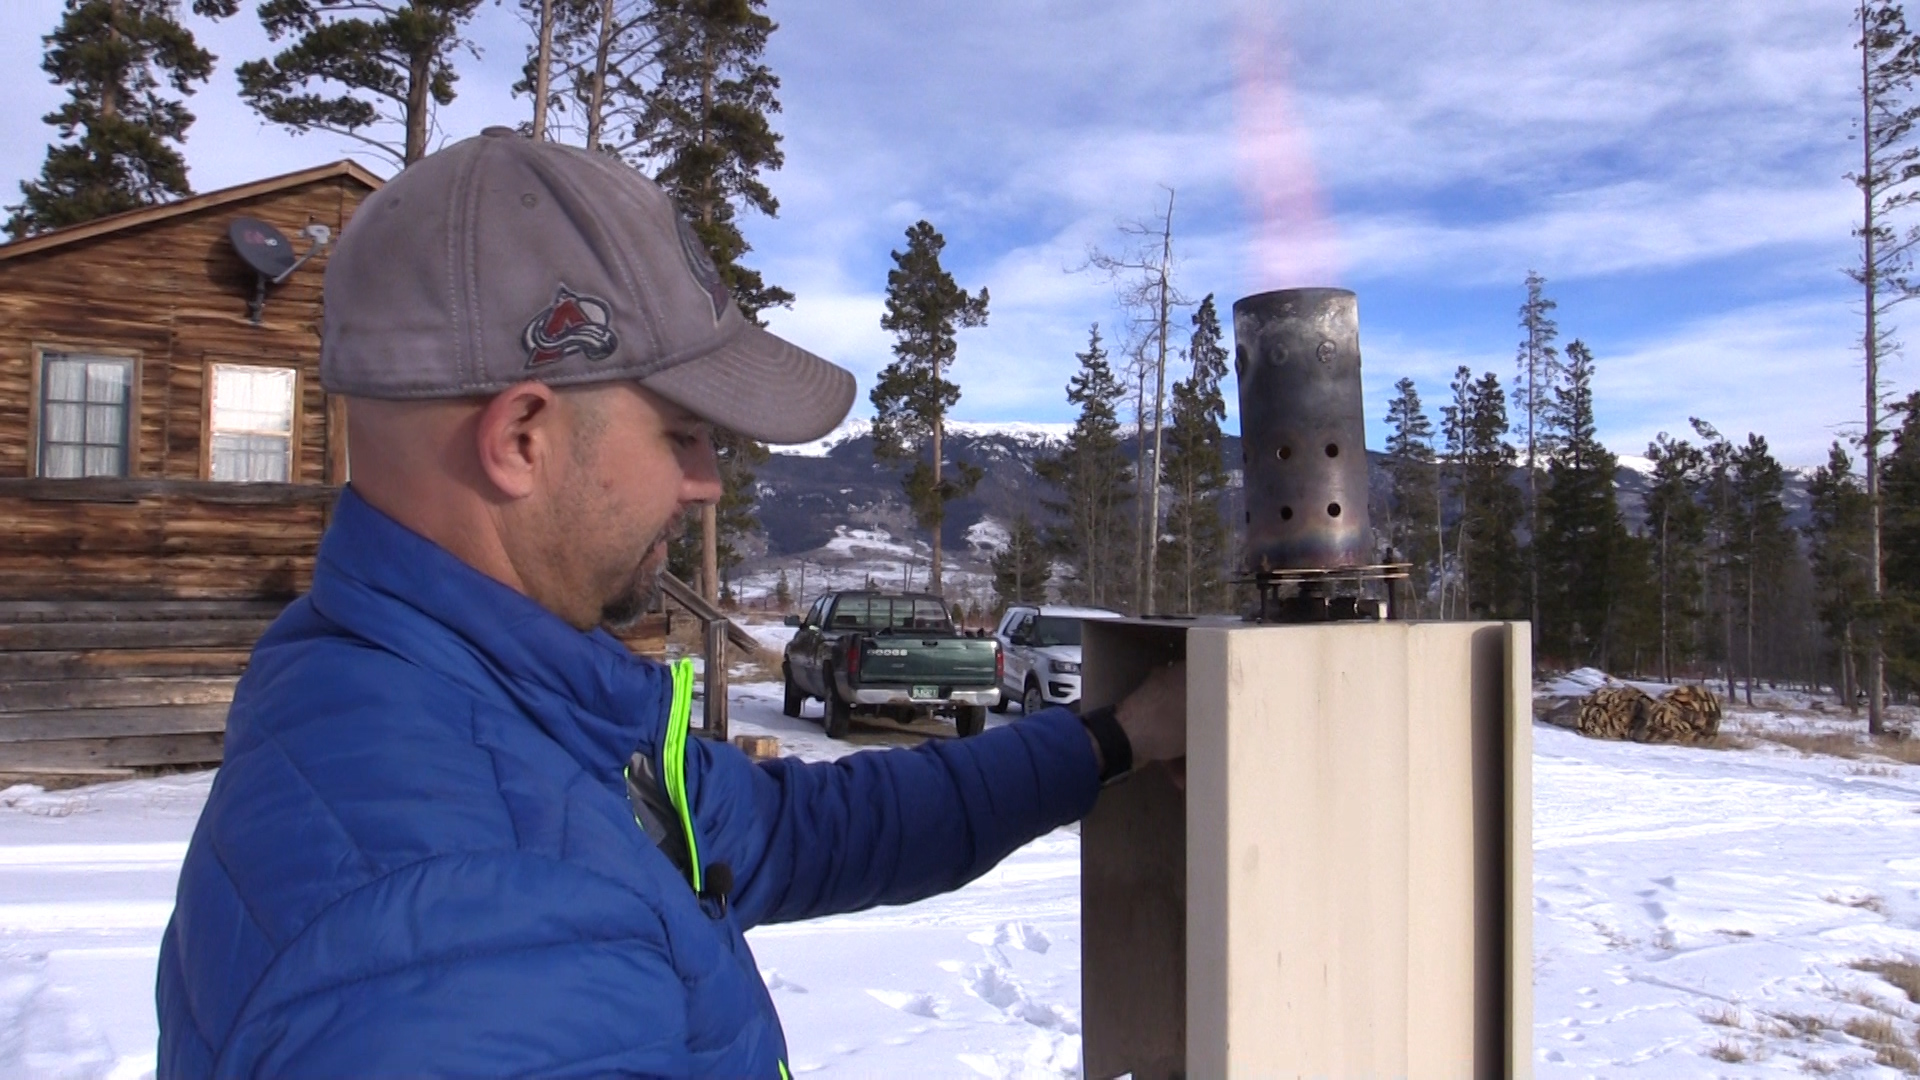 Eric Hjermstad, field operations director, Western Weather Consultants, lights a cloud seeding generator north of Silverthorne, Colorado.